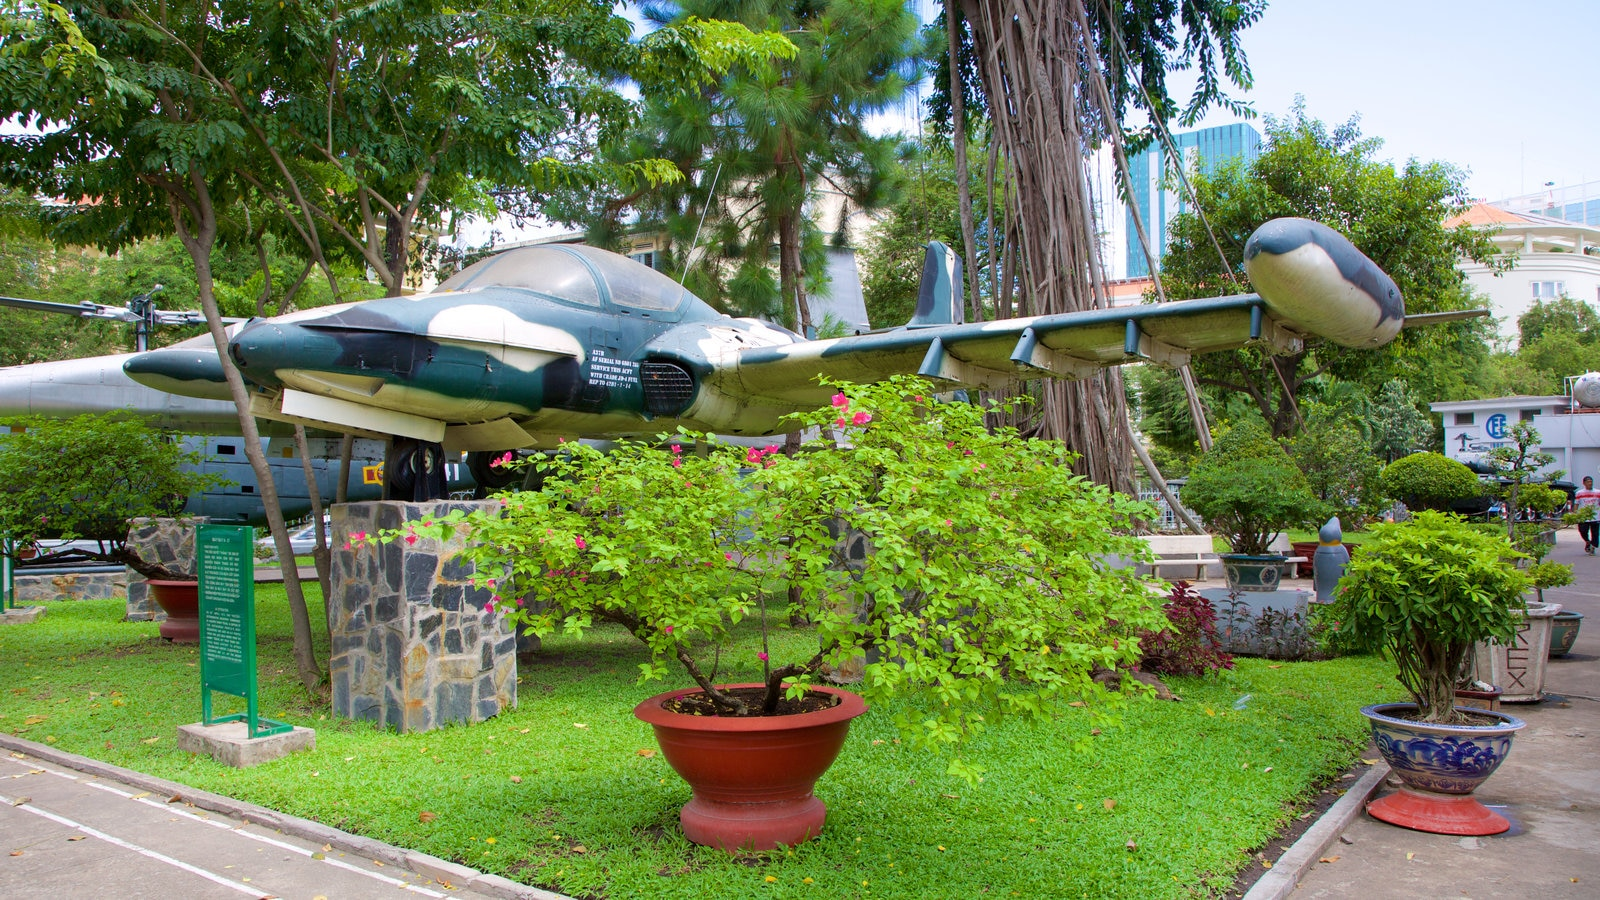 Ho Chi Minh City Museum featuring a park, aircraft and military items